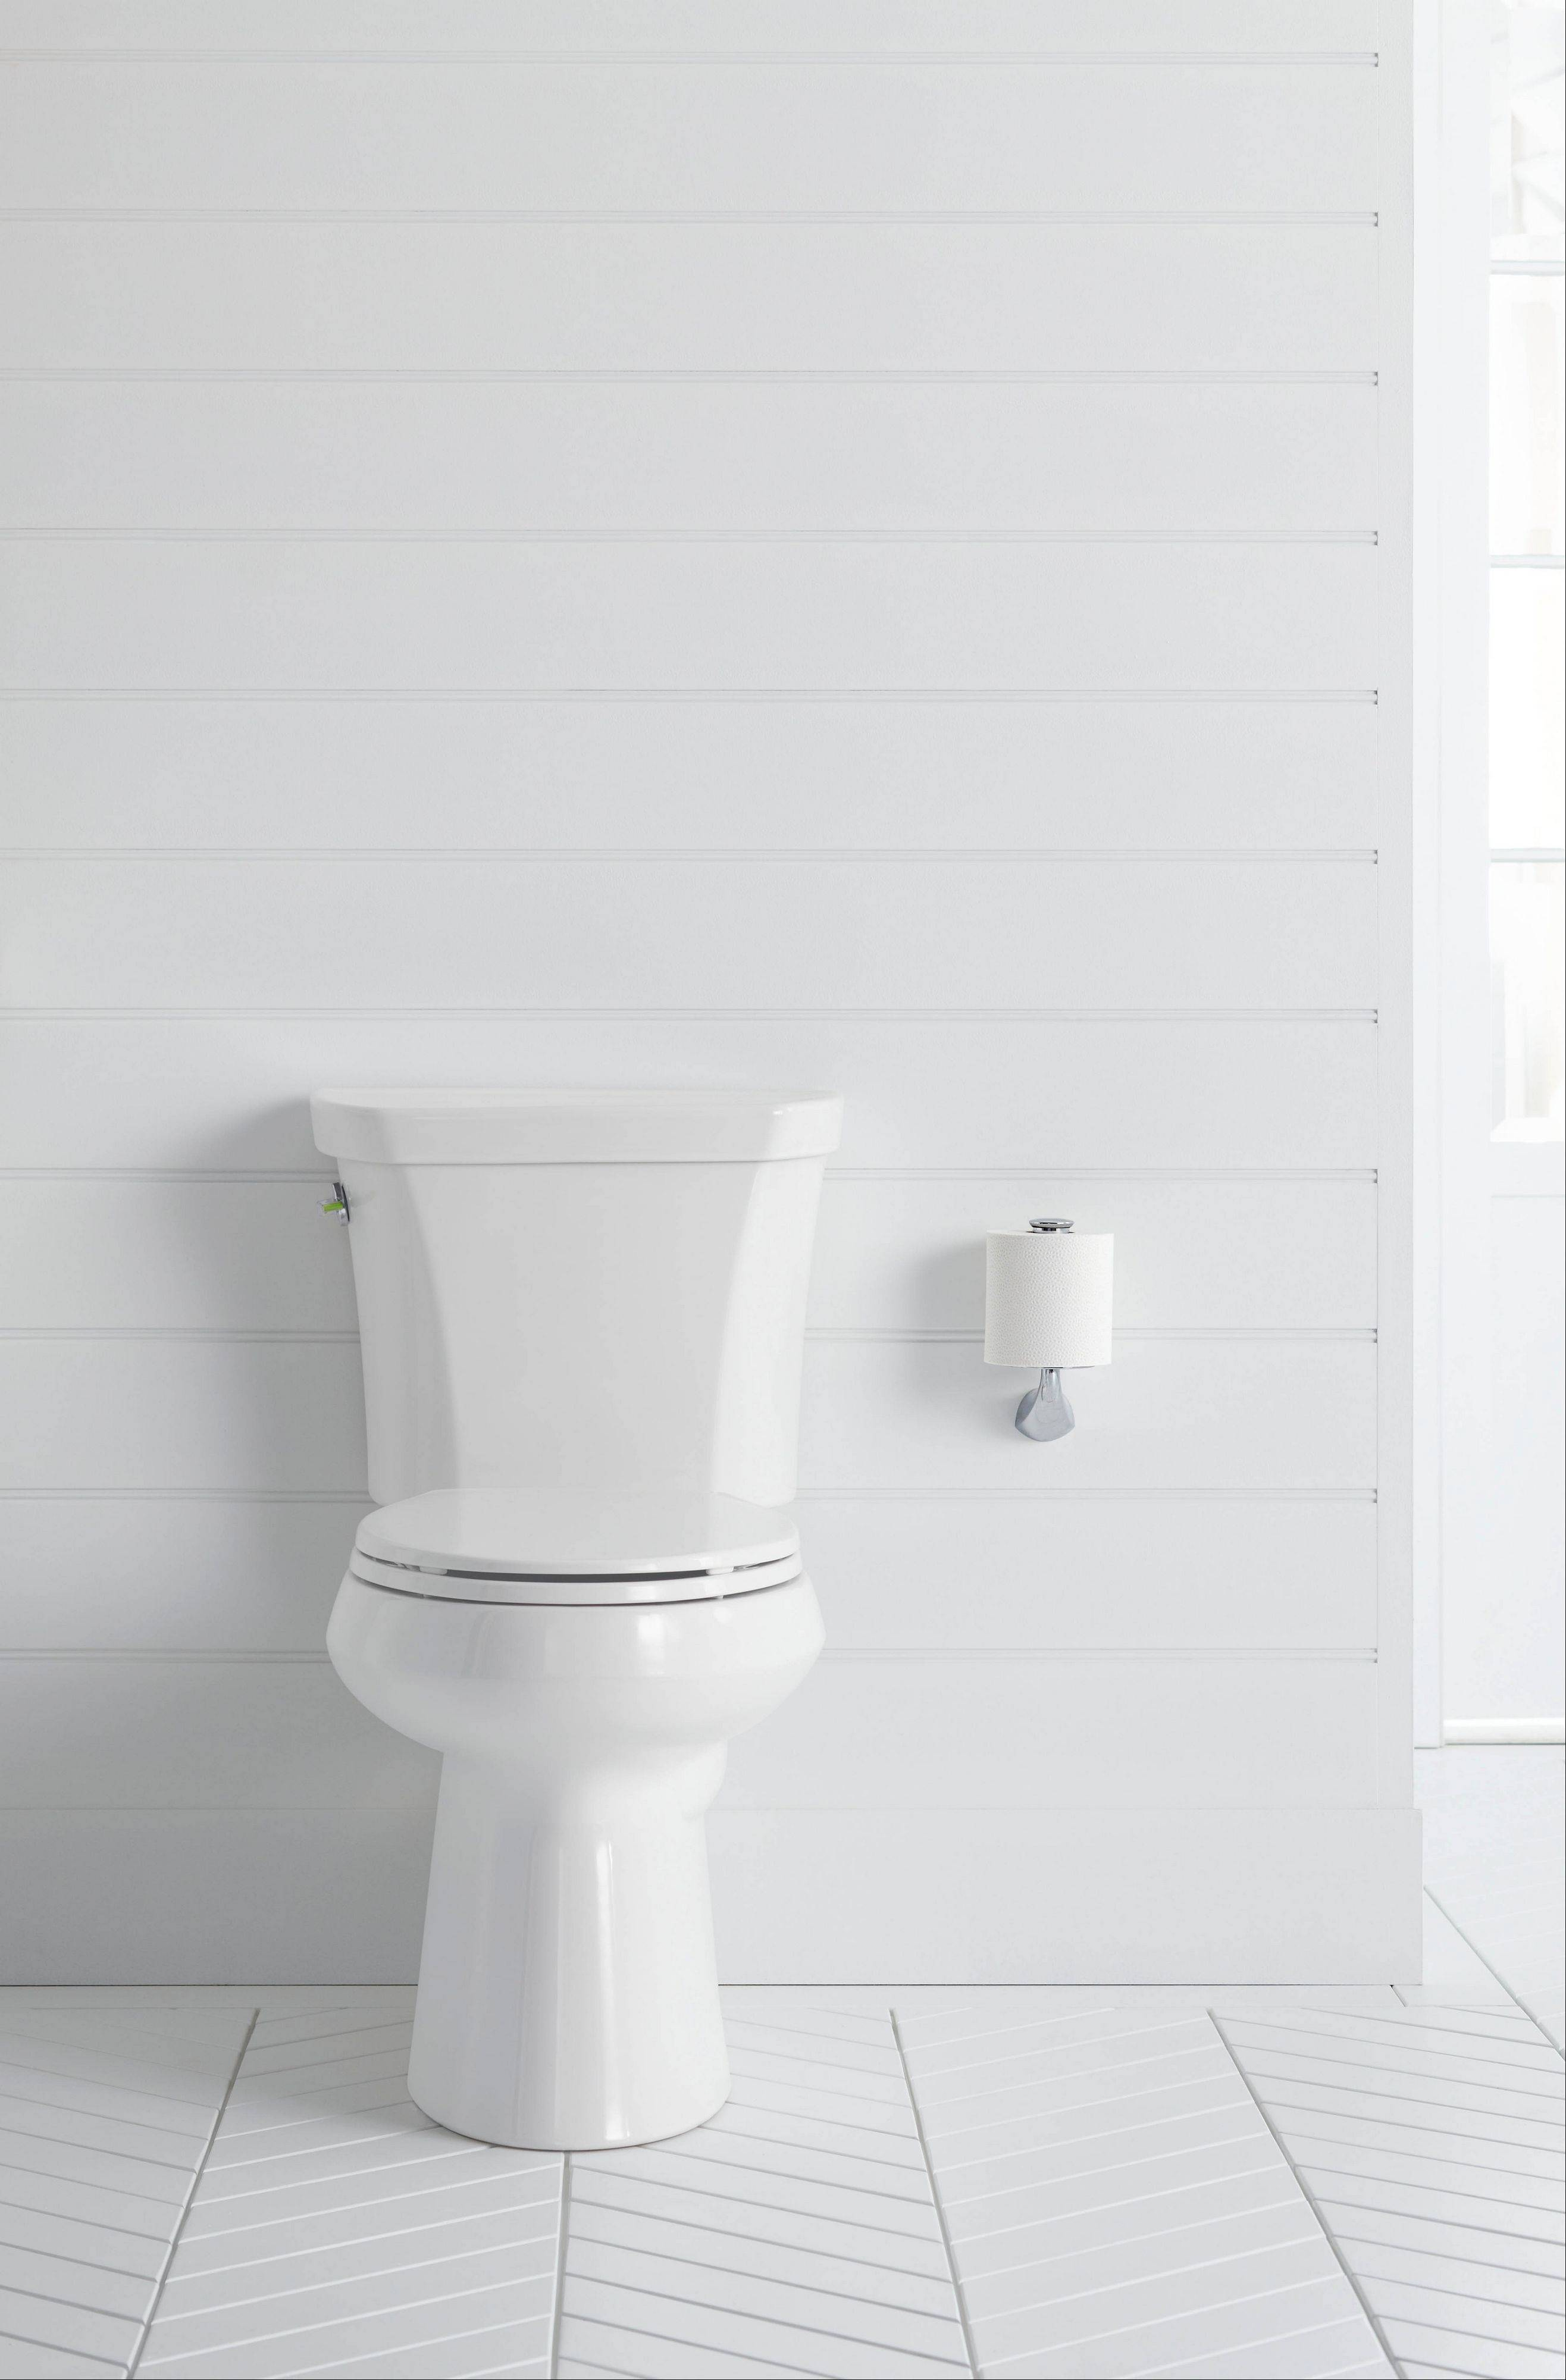 Dual-flush toilets are water-savers that let you pick between a full 1.6-gallon flush and a smaller flush of about 1 gallon.